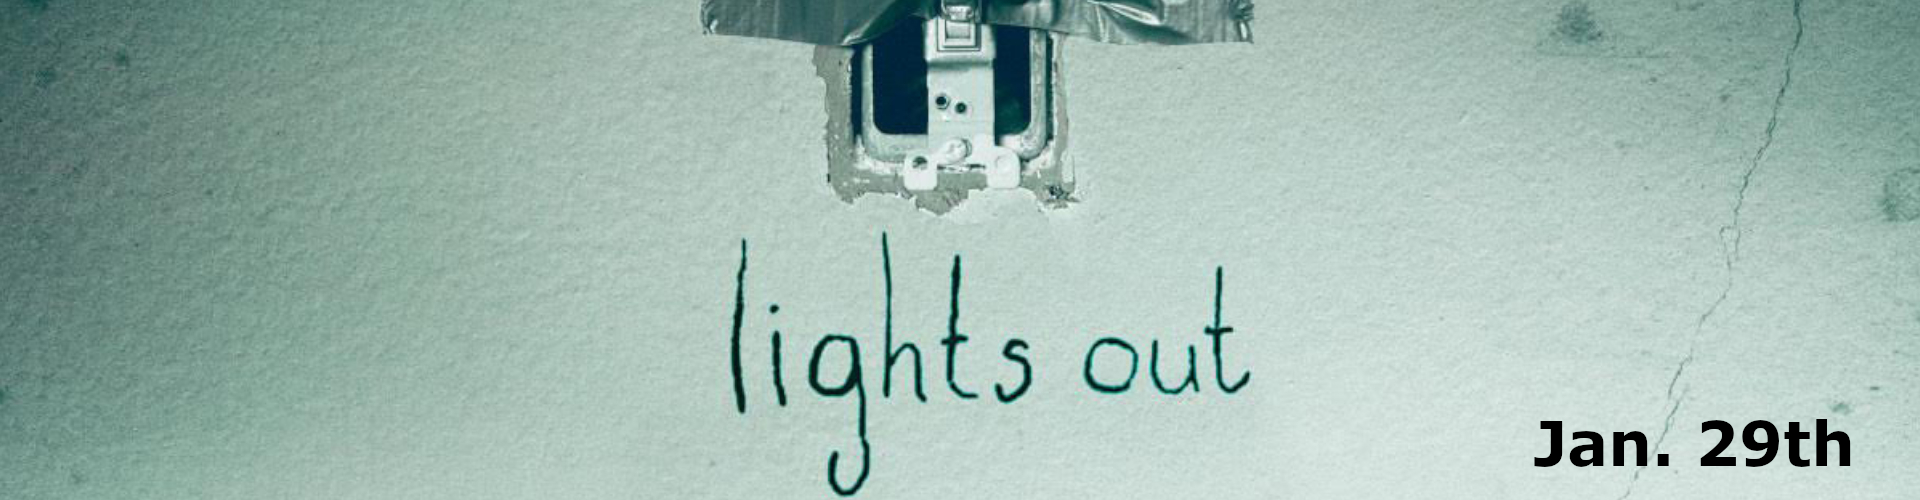 lights+out (1)